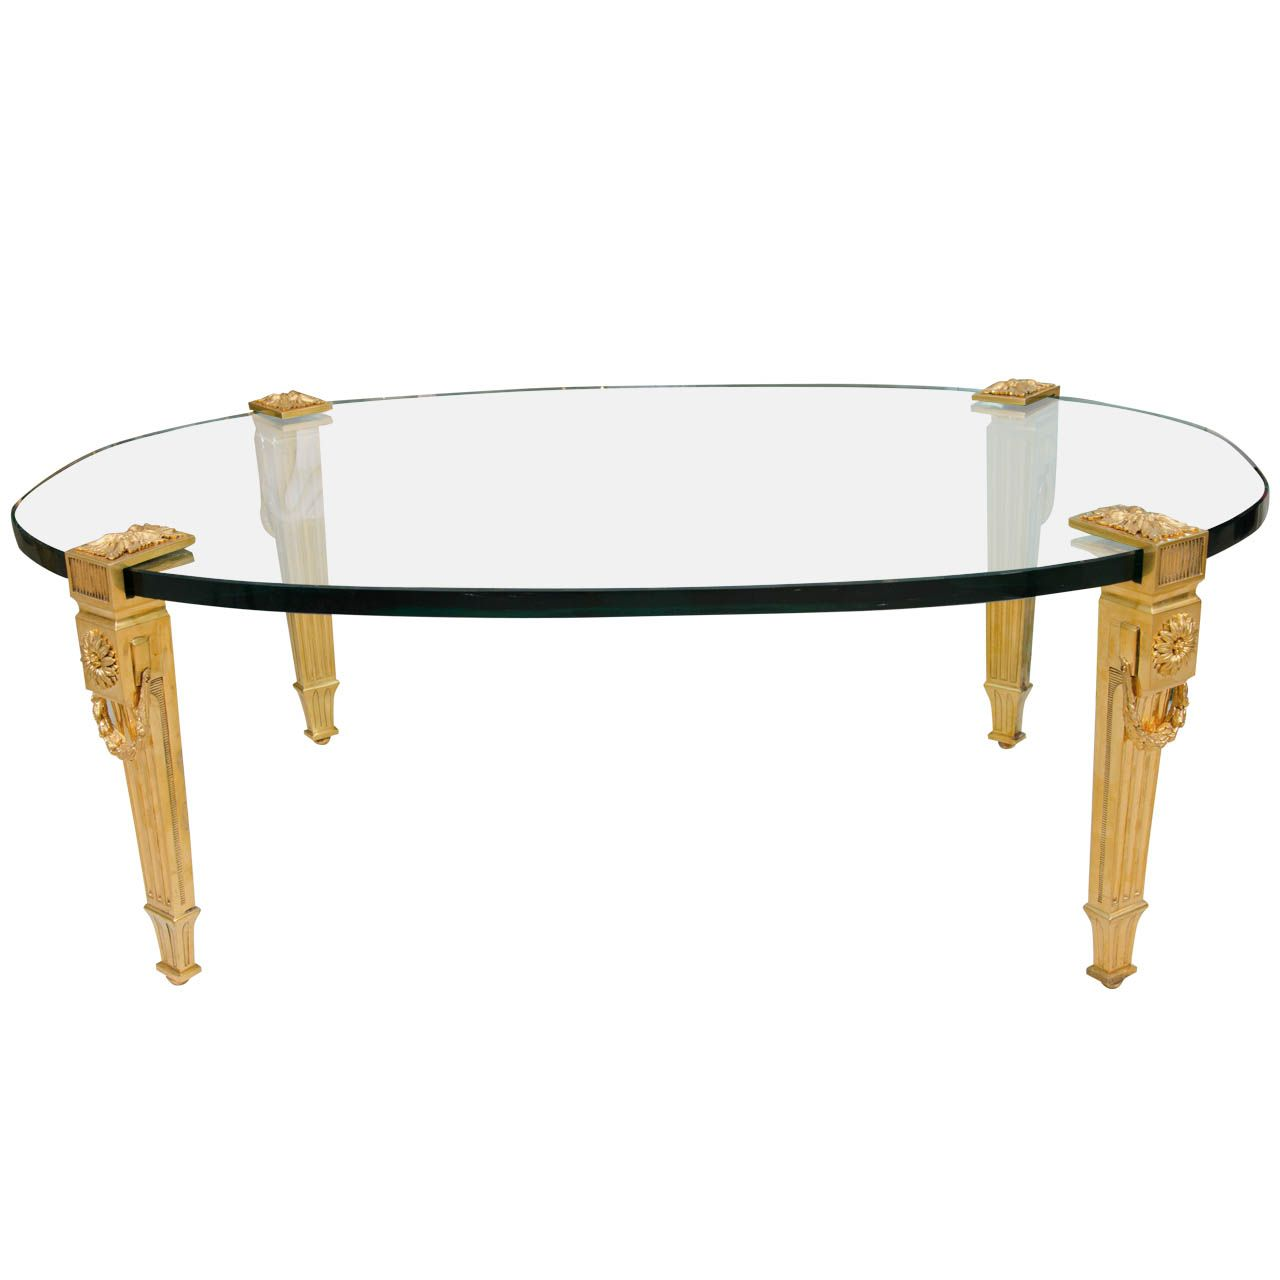 Oval Glass Top Cocktail Table With Gilt Bronze Legs By P E Guerin 1stdibs Com Glass Top Cocktail Tables Table [ 1280 x 1280 Pixel ]